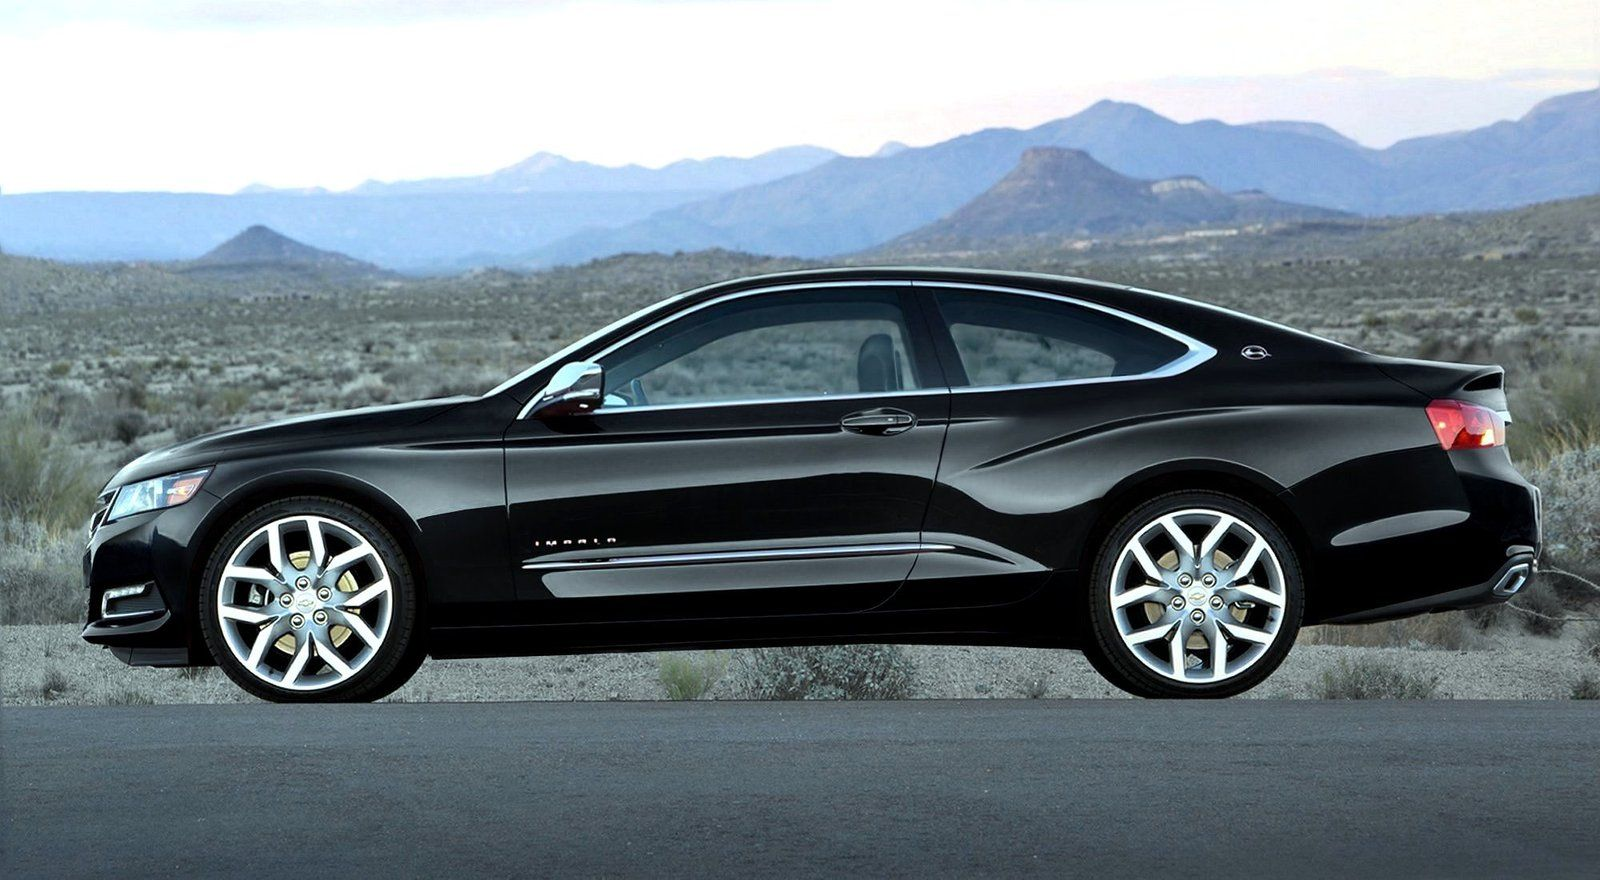 All Chevy chevy 2 door : 2014 Chevy Impala, 2-door. If only. But they will never do it. It ...